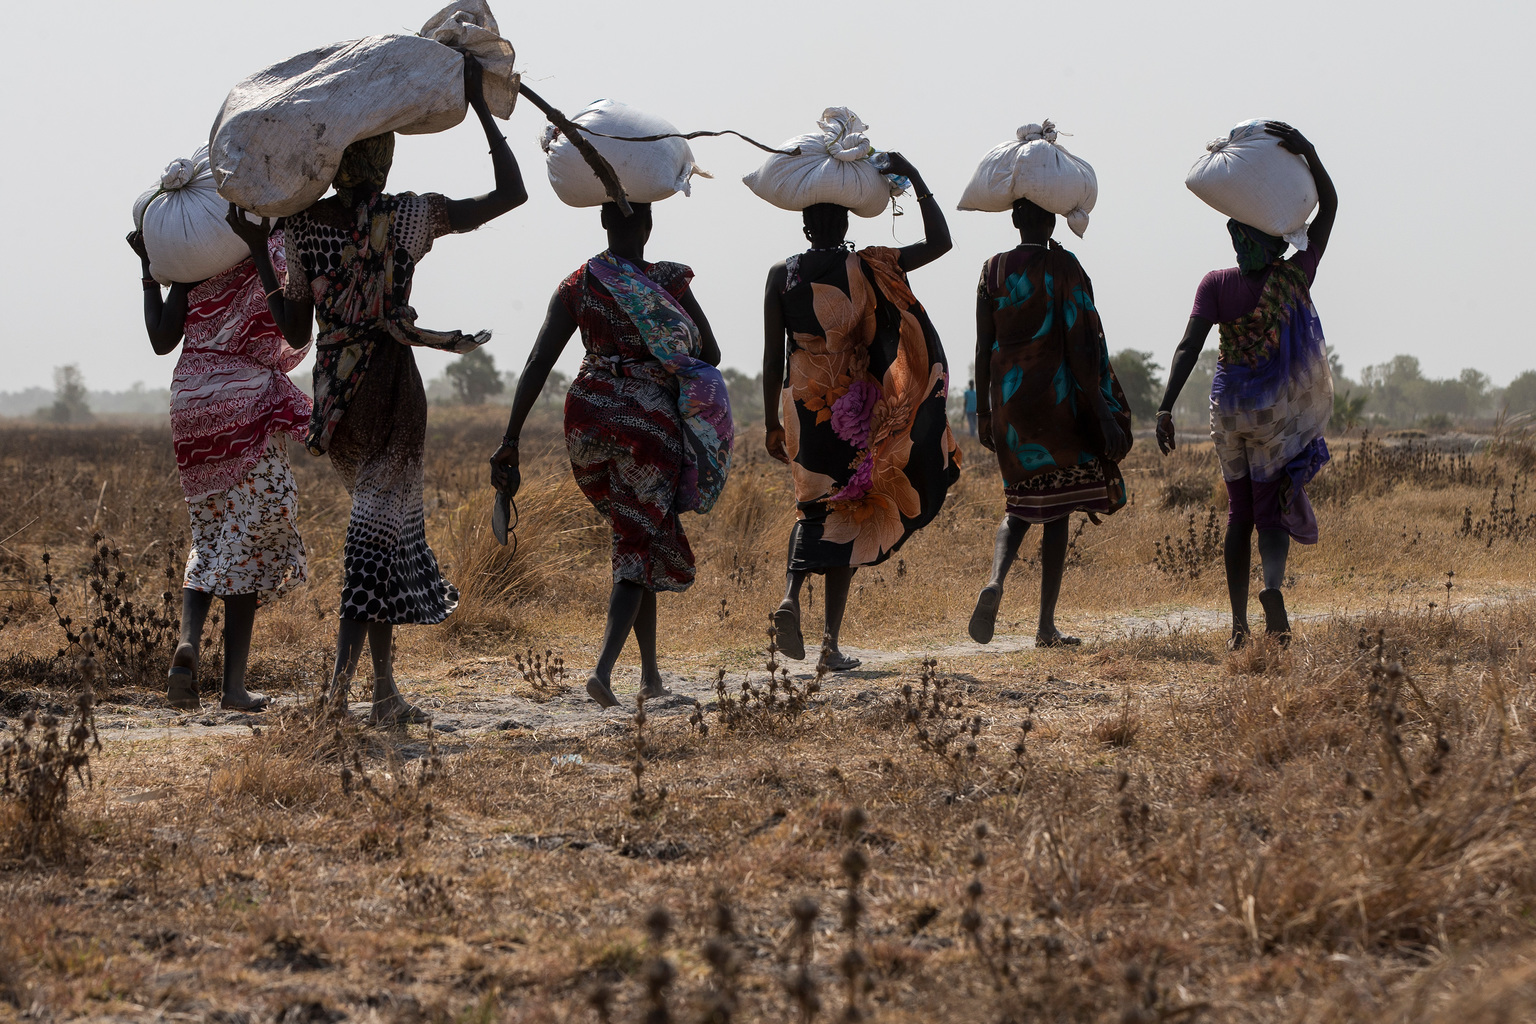 Women carry sacks of aid food in Thonyor, Leer county, South Sudan, February 24, 2017. In areas affected by insecurity and cut off from humanitarian assistance, including Leer, Koch and Manyedit counties, UNICEF, in collaboration with World Food Programme and partners, are working to reach the most vulnerable children with acute malnutrition through Rapid Response Missions and to re-establish static services in areas with relative calm. Further missions are planned in the coming days and weeks to address the nutrition crisis.  In March 2017, war and a collapsing economy have left some 100,000 people facing starvation in parts of South Sudan where famine was declared 20 February, three UN agencies warned. A further 1 million people are classified as being on the brink of famine. The Food and Agriculture Organization of the United Nations (FAO), the United Nations Children's Fund (UNICEF) and the World Food Programme (WFP) also warned that urgent action is needed to prevent more people from dying of hunger. If sustained and adequate assistance is delivered urgently, the hunger situation can be improved in the coming months and further suffering mitigated.   The total number of food insecure people is expected to rise to 5.5 million at the height of the lean season in July if nothing is done to curb the severity and spread of the food crisis. According to the Integrated Food Security Phase Classification (IPC) update released 20 February by the government, the three agencies and other humanitarian partners, 4.9 million people - more than 40 percent of South Sudan's population - are in need of urgent food, agriculture and nutrition assistance. Unimpeded humanitarian access to everyone facing famine, or at risk of famine, is urgently needed to reverse the escalating catastrophe, the UN agencies urged. Further spread of famine can only be prevented if humanitarian assistance is scaled up and reaches the most vulnerable.  A formal famine declaration means people have already started dying of hunger. The situation is the worst hunger catastrophe since fighting erupted more than three years ago. Across the country, three years of conflict have severely undermined crop production and rural livelihoods. The upsurge in violence since July 2016 has further devastated food production, including in previously stable areas. Soaring inflation - up to 800 percent year-on-year - and market failure have also hit areas that traditionally rely on markets to meet food needs. Urban populations are also struggling to cope with massive price rises on basic food items.  FAO, UNICEF and WFP, with other partners, have conducted massive relief operations since the conflict began, and intensified those efforts throughout 2016 to mitigate the worst effects of the humanitarian crisis. Working with over 40 partners and in close collaboration with WFP, UNICEF is supporting 620 outpatient therapeutic programme sites and about 50 inpatient therapeutic sites across the country to provide children with urgently needed treatment. Through a Rapid Response Mechanism (RRM carried out jointly with WFP, UNICEF continues to reach communit